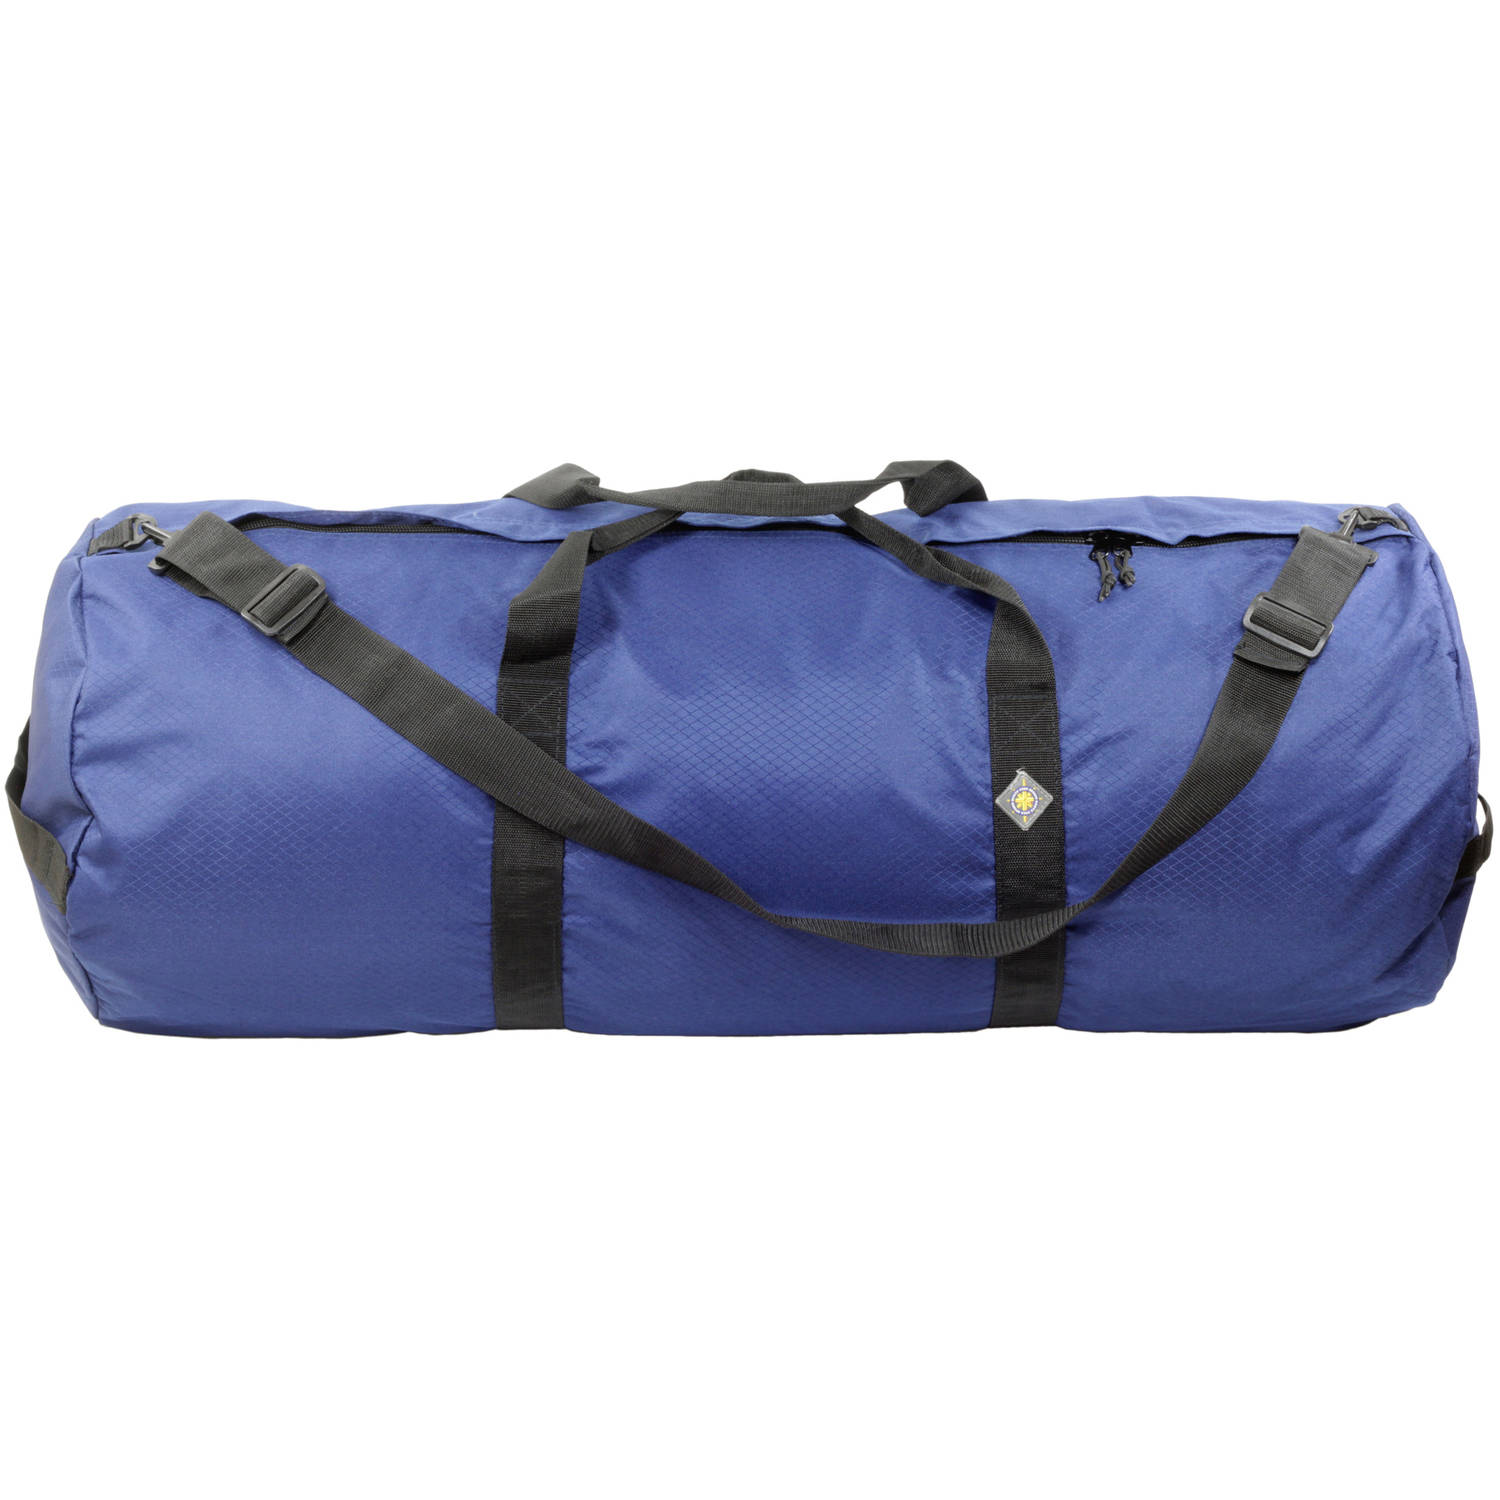 North Star SD 1640 Sport Duffle Bag, Pacific Blue by Northstar Bags